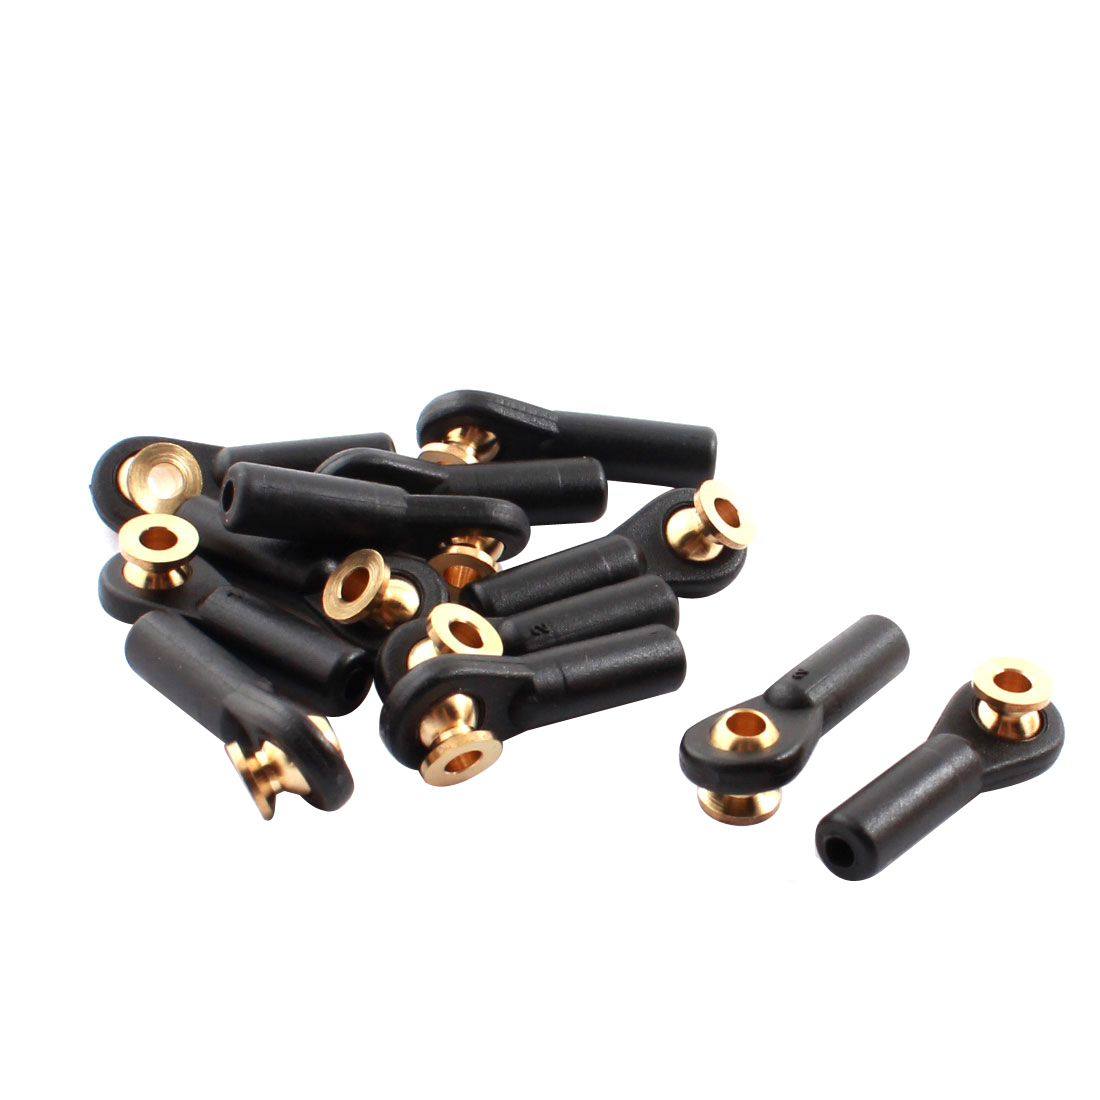 12Pcs RC Car Spare Parts Tie Rod Ends Brass Ball Link 3x3x27mm